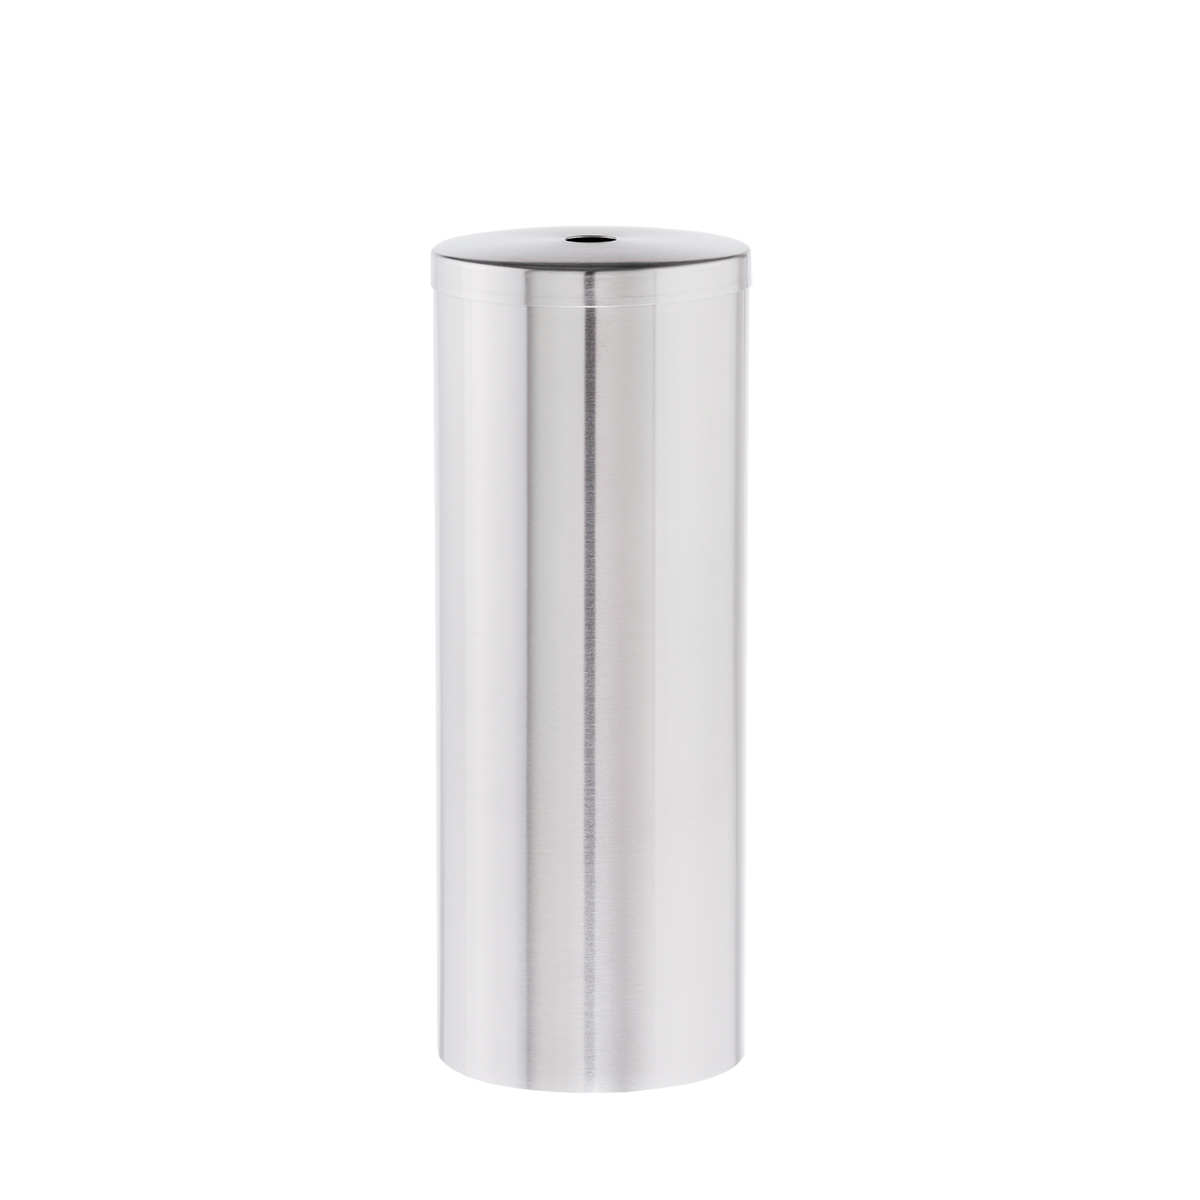 Toilet Paper Canister